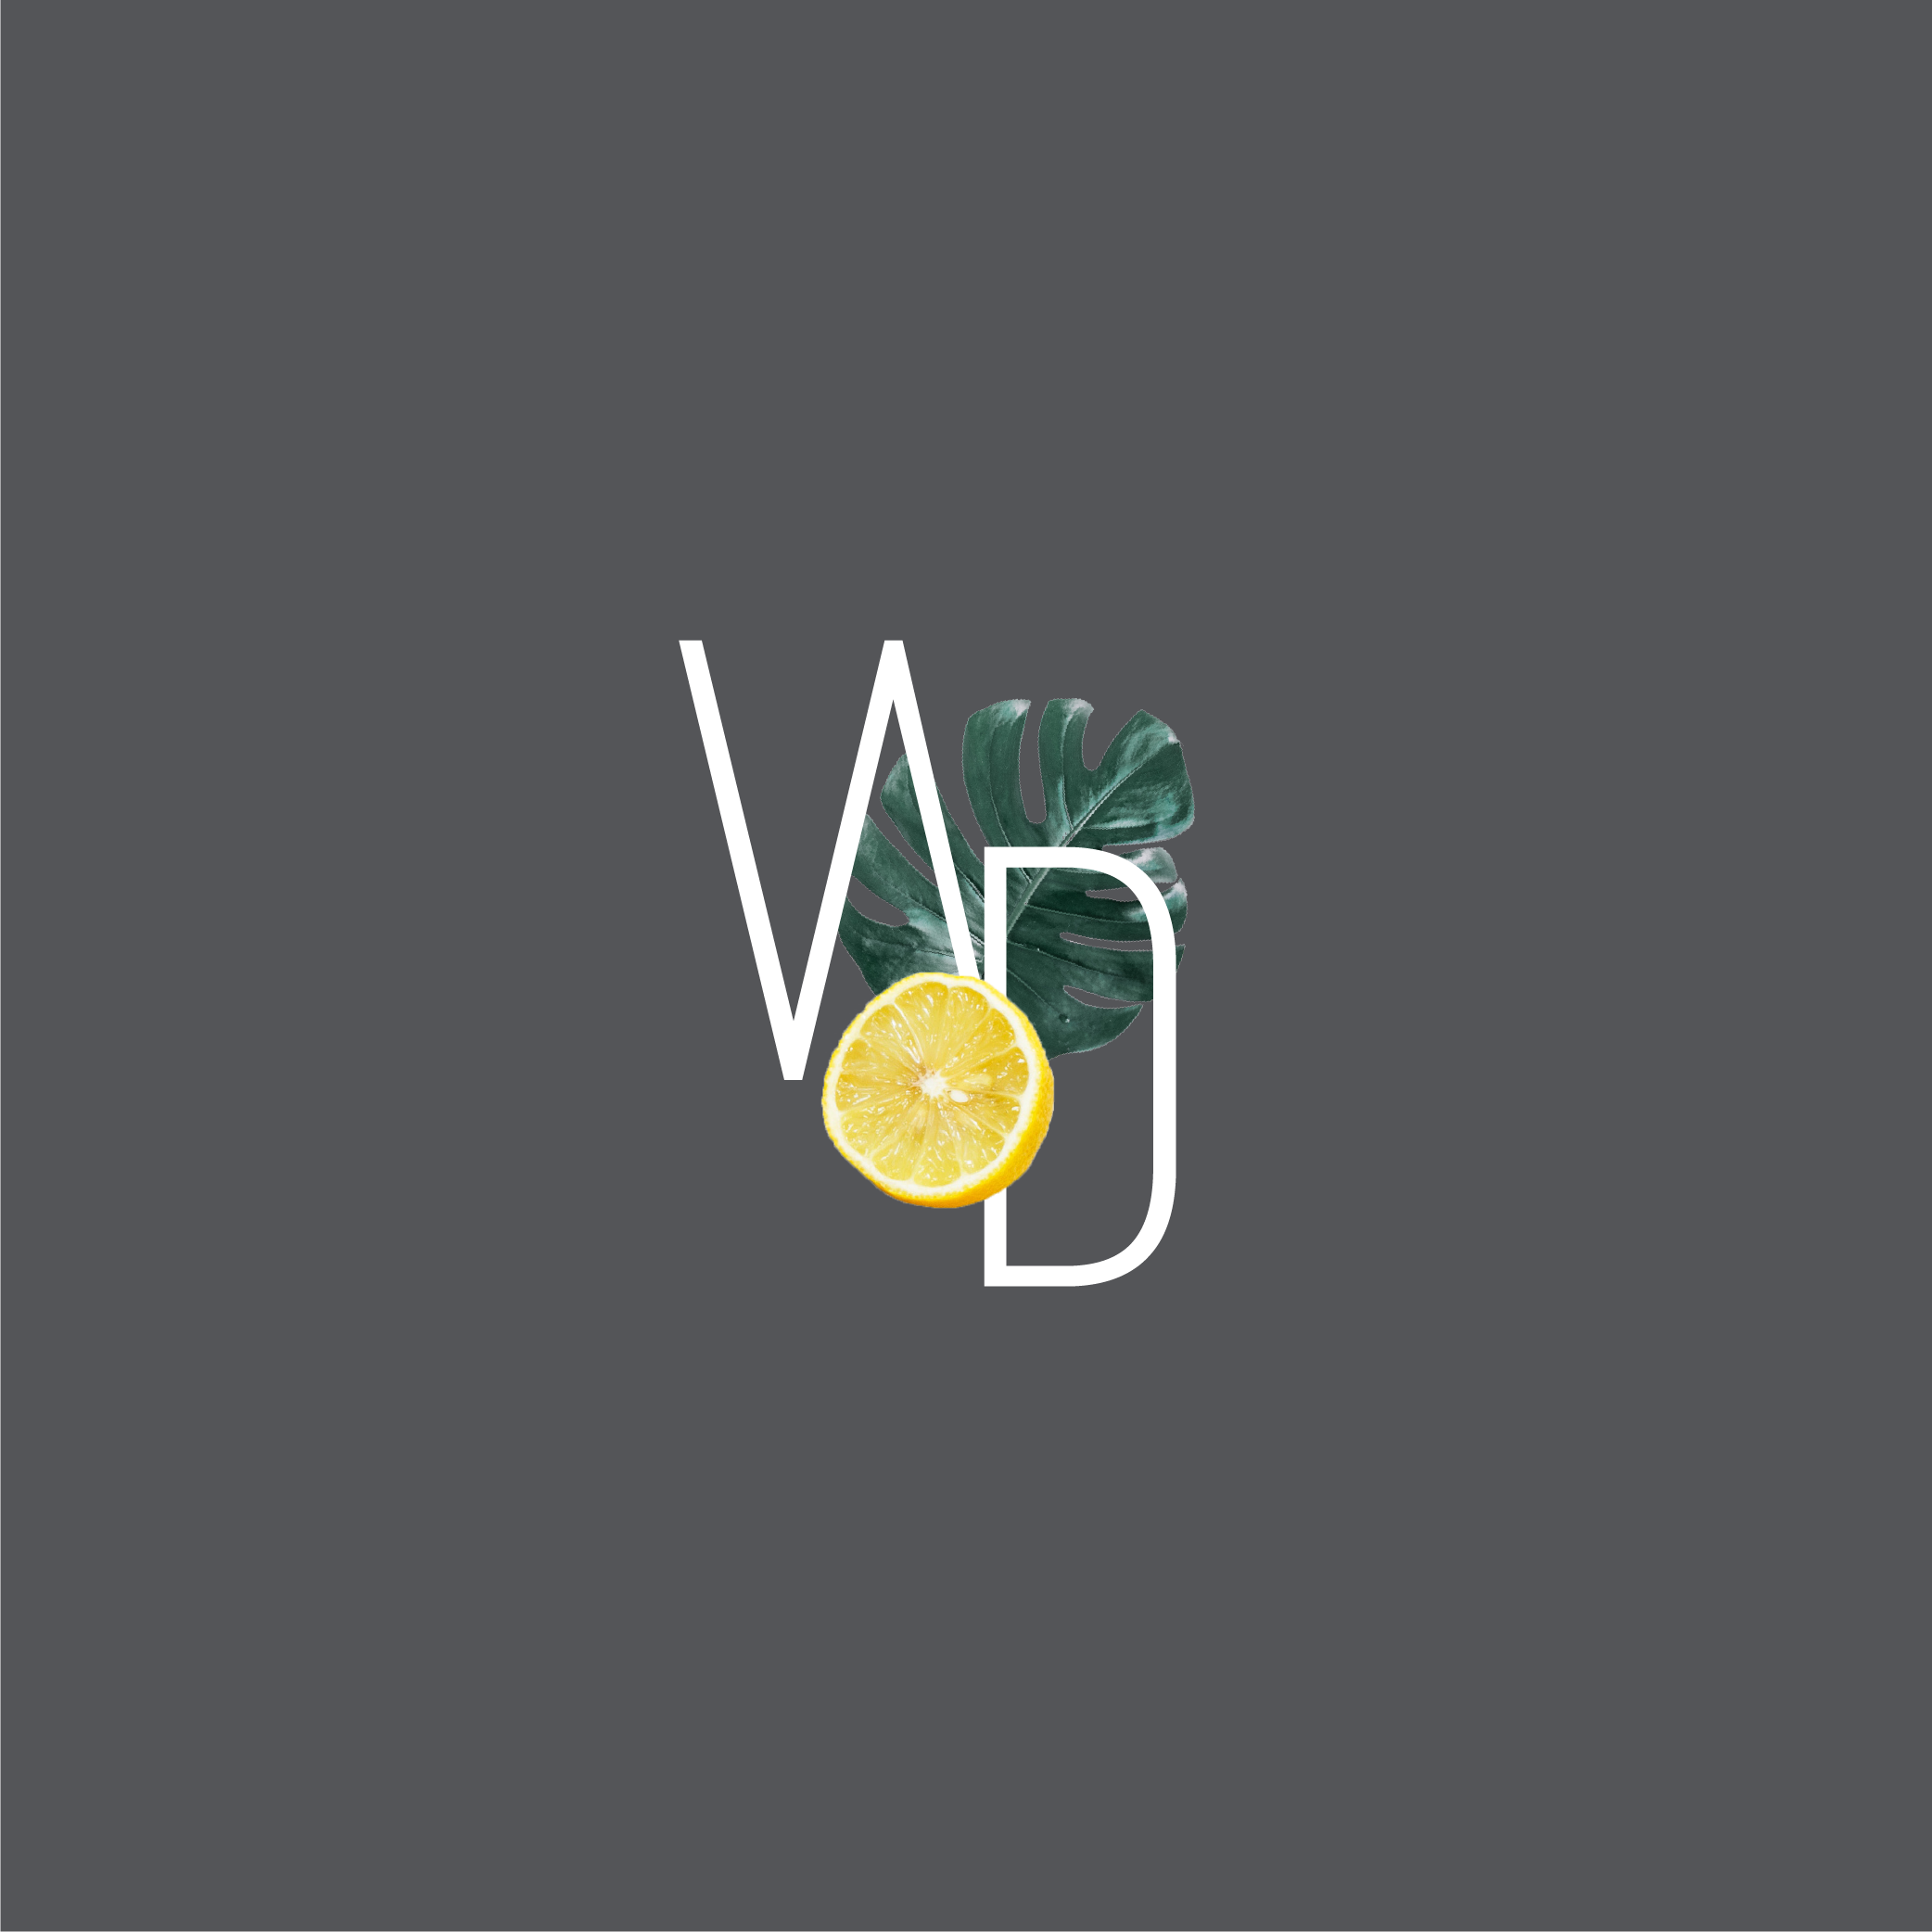 Well Daily 'WD' monogram with a tropical leaf and lemon incorporated into the logo on a charcoal background.